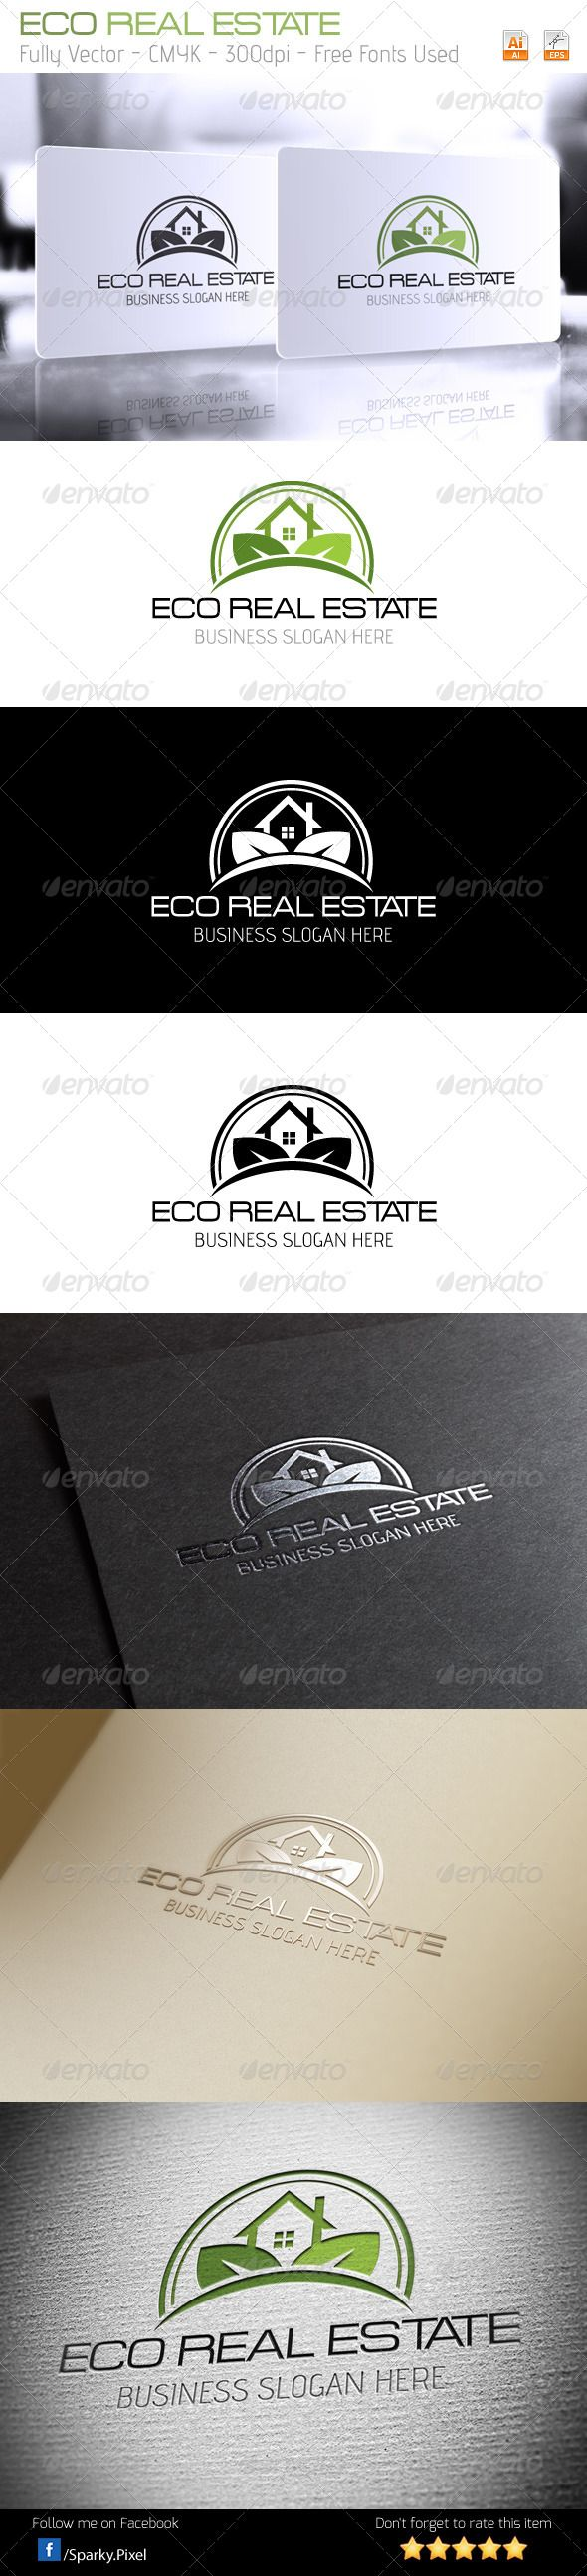 Eco Real Estate Logo #GraphicRiver Eco Real Estate Logo Everything is done in vector, so it is highly customizable and can be resized without loss of quality. Excellent logo,simple and unique. Included : AI, EPS_10. File is easy to editing. Font used : Acens Advent \\ If you buy and like it, please rate it! Thank you ENJOY IT!!!! Created: 4 December 13 Graphics Files Included: Vector EPS #AI Illustrator Layered: Yes Minimum Adobe CS Version: CS Resolution: Resizable Tags agent #agriculture…